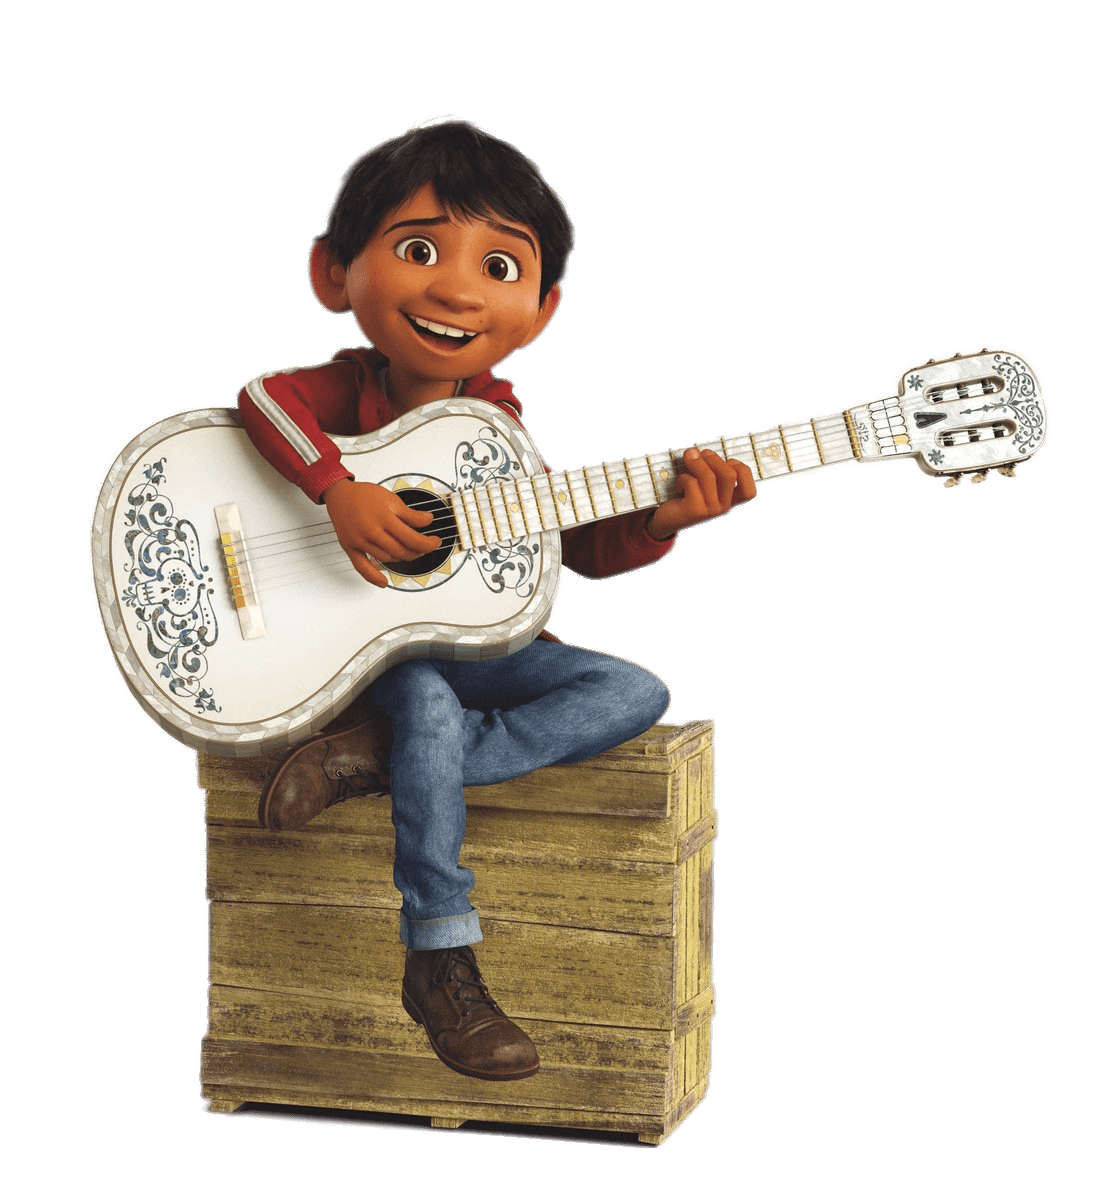 Coco png. Miguel sitting on wooden